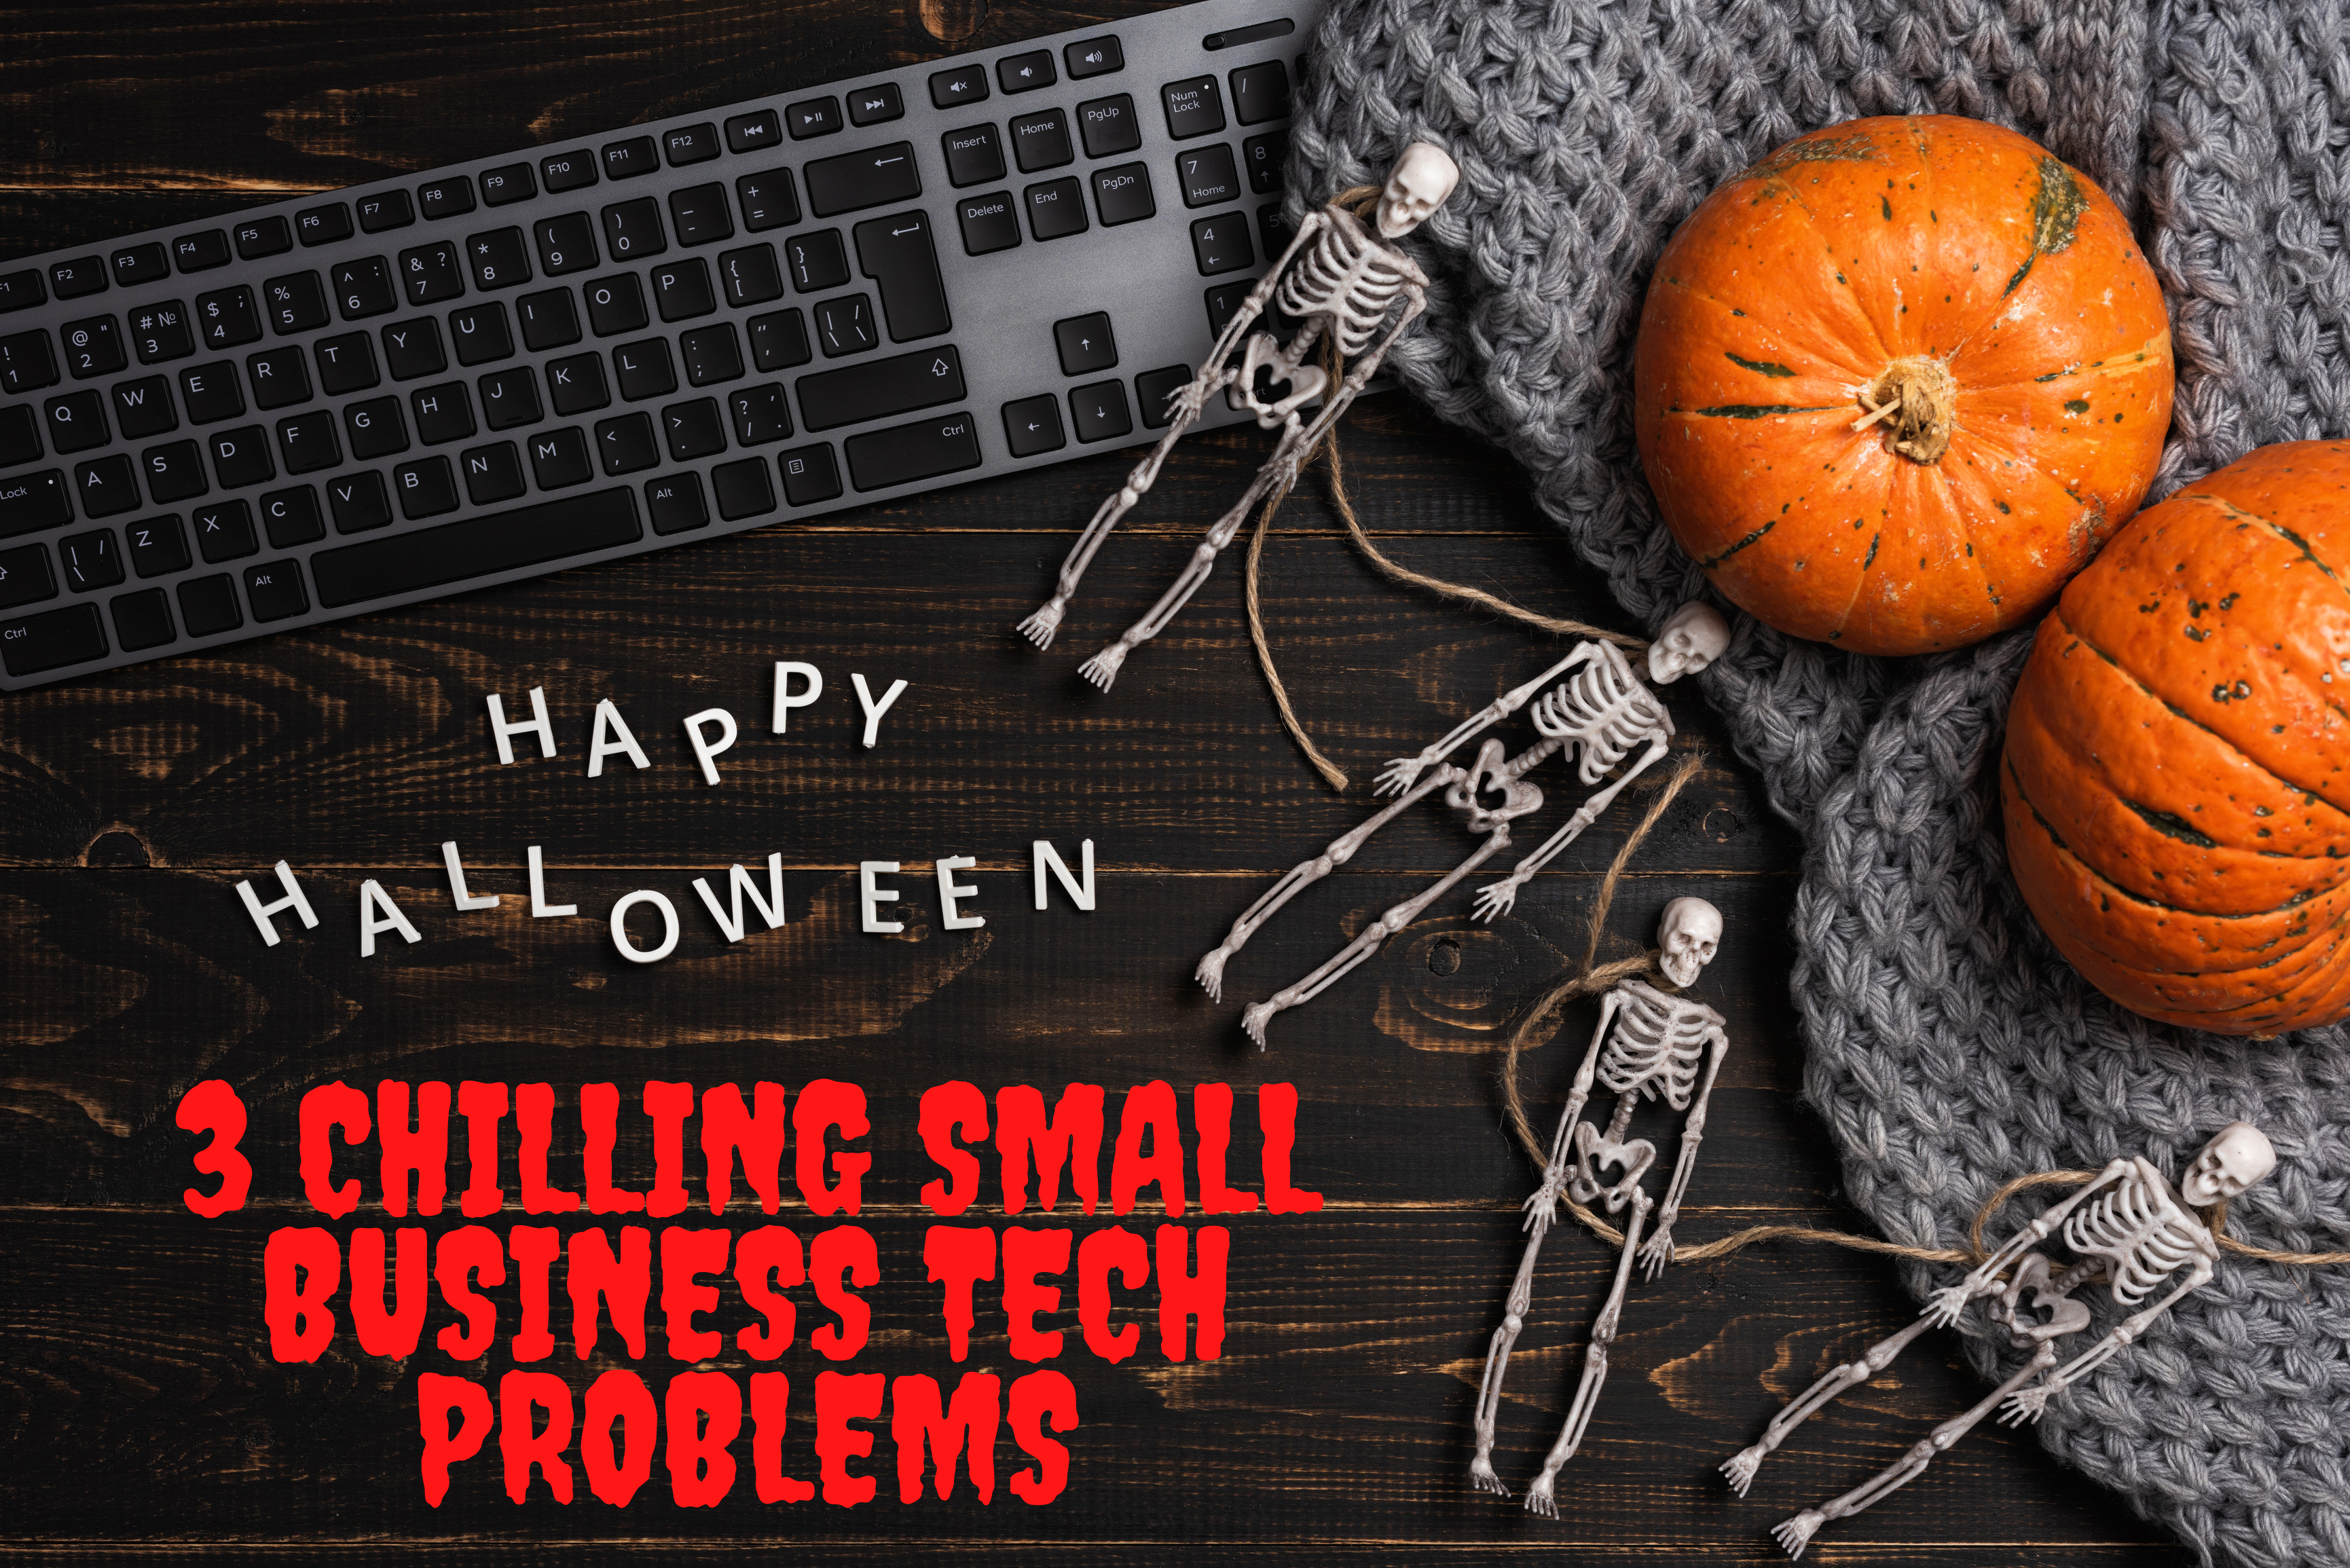 """Computer keyboard with skeletons and pumpkins and text reading """"Happy Halloween. 3 Chilling Small Business Tech Problems"""